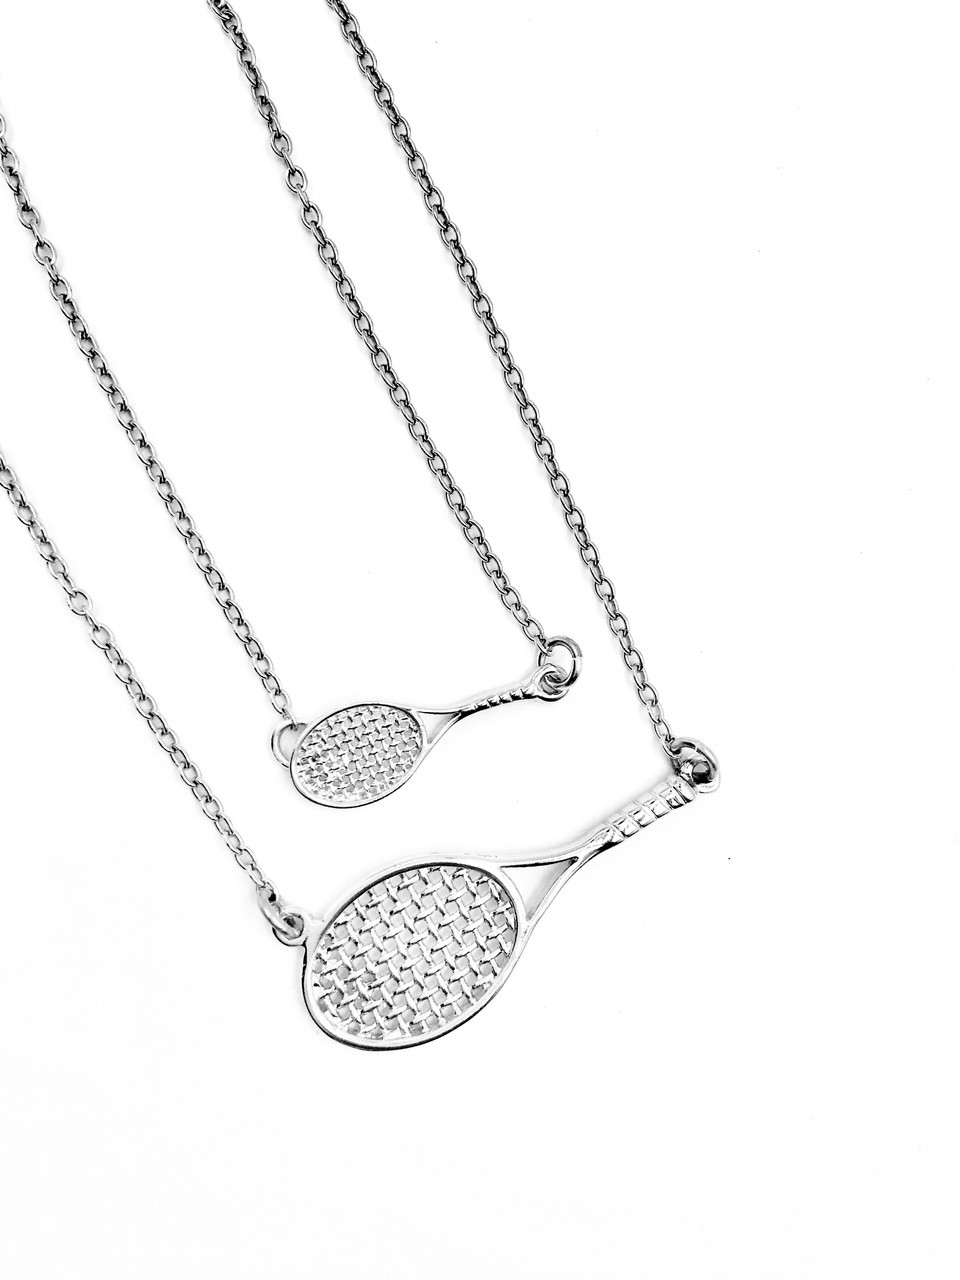 GiftJewelryShop Bronze Retro Style Olympics Tennis Ball and Racket Dots Flower Pendant Necklaces #20